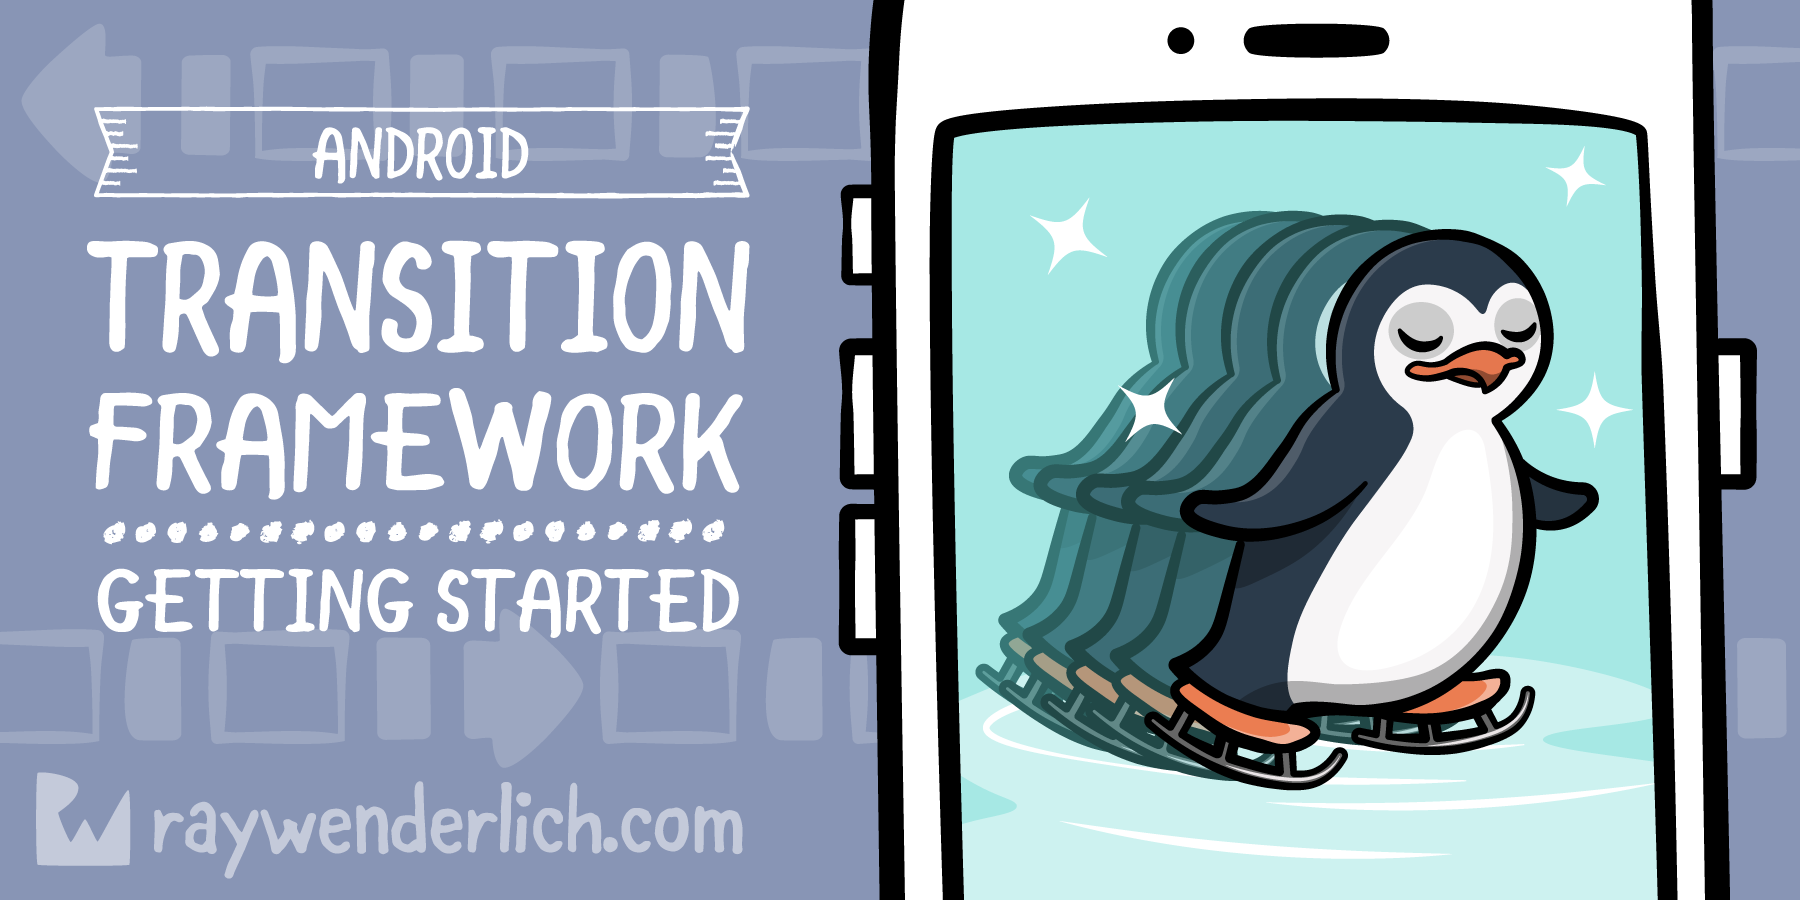 Android Transition Framework: Getting Started